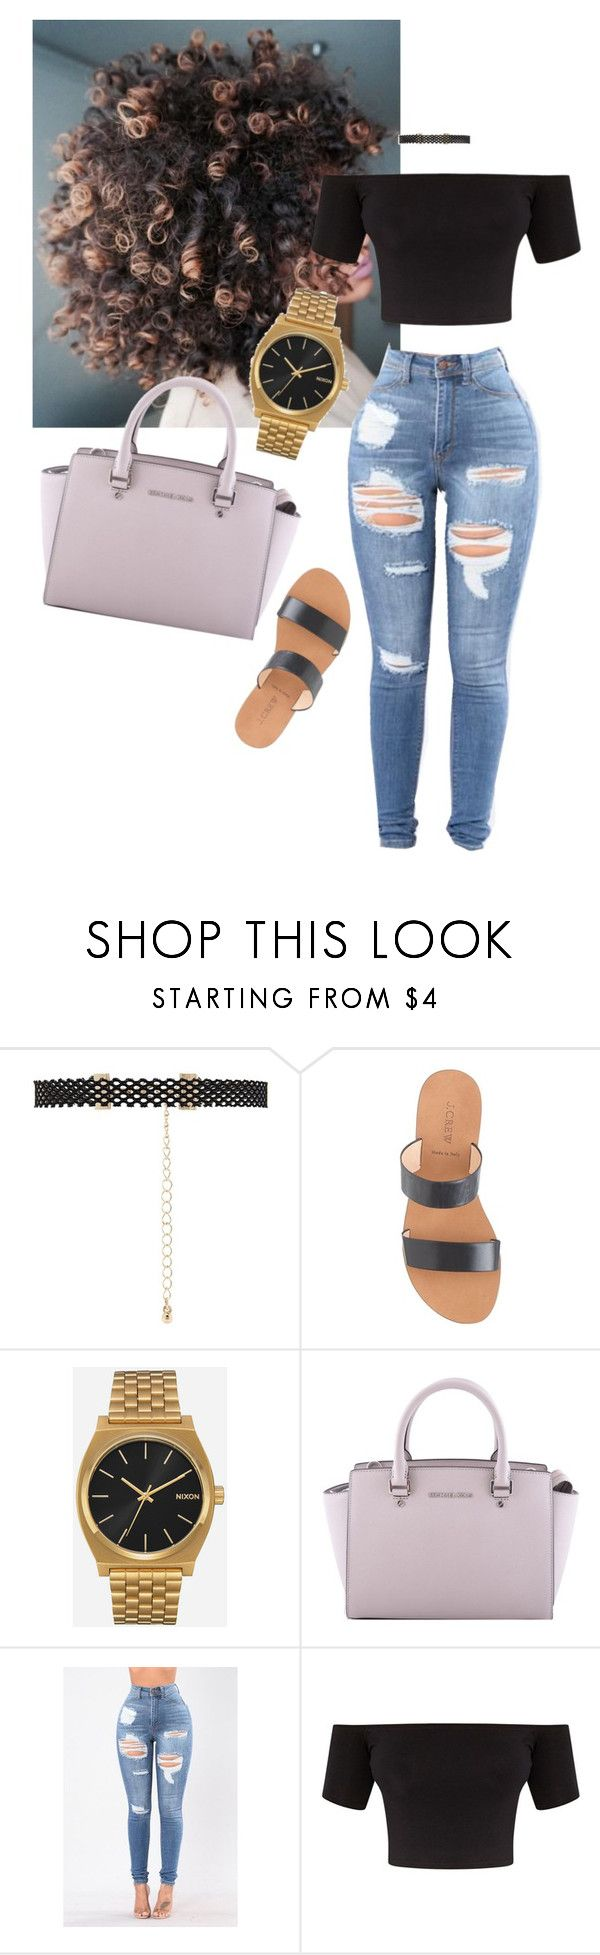 """Outfit"" by angiebe1 ❤ liked on Polyvore featuring Forever 21, J.Crew, Nixon and MICHAEL Michael Kors"